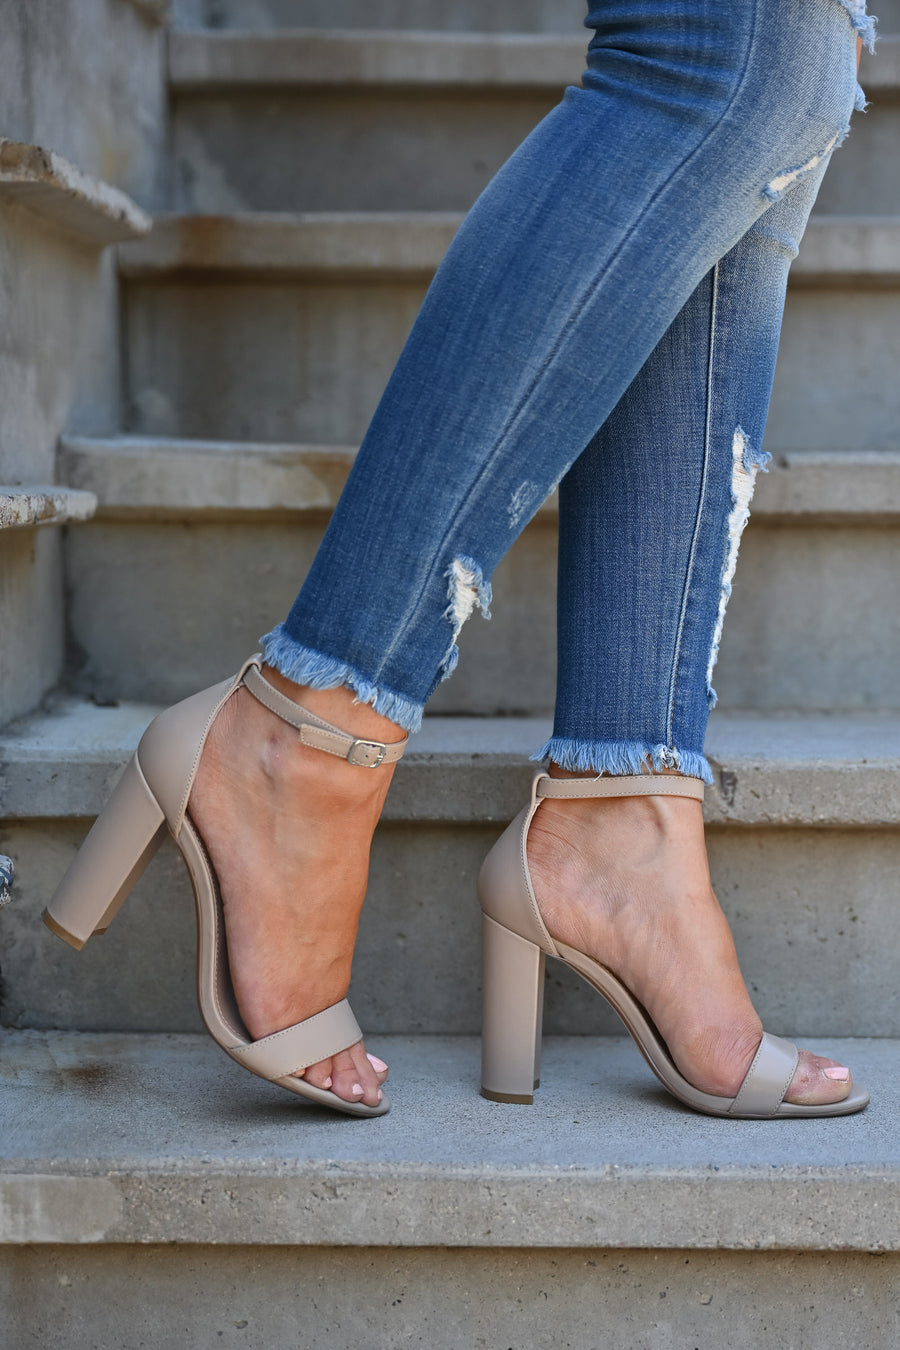 STEVE MADDEN Carrson Heels - Blush Leather